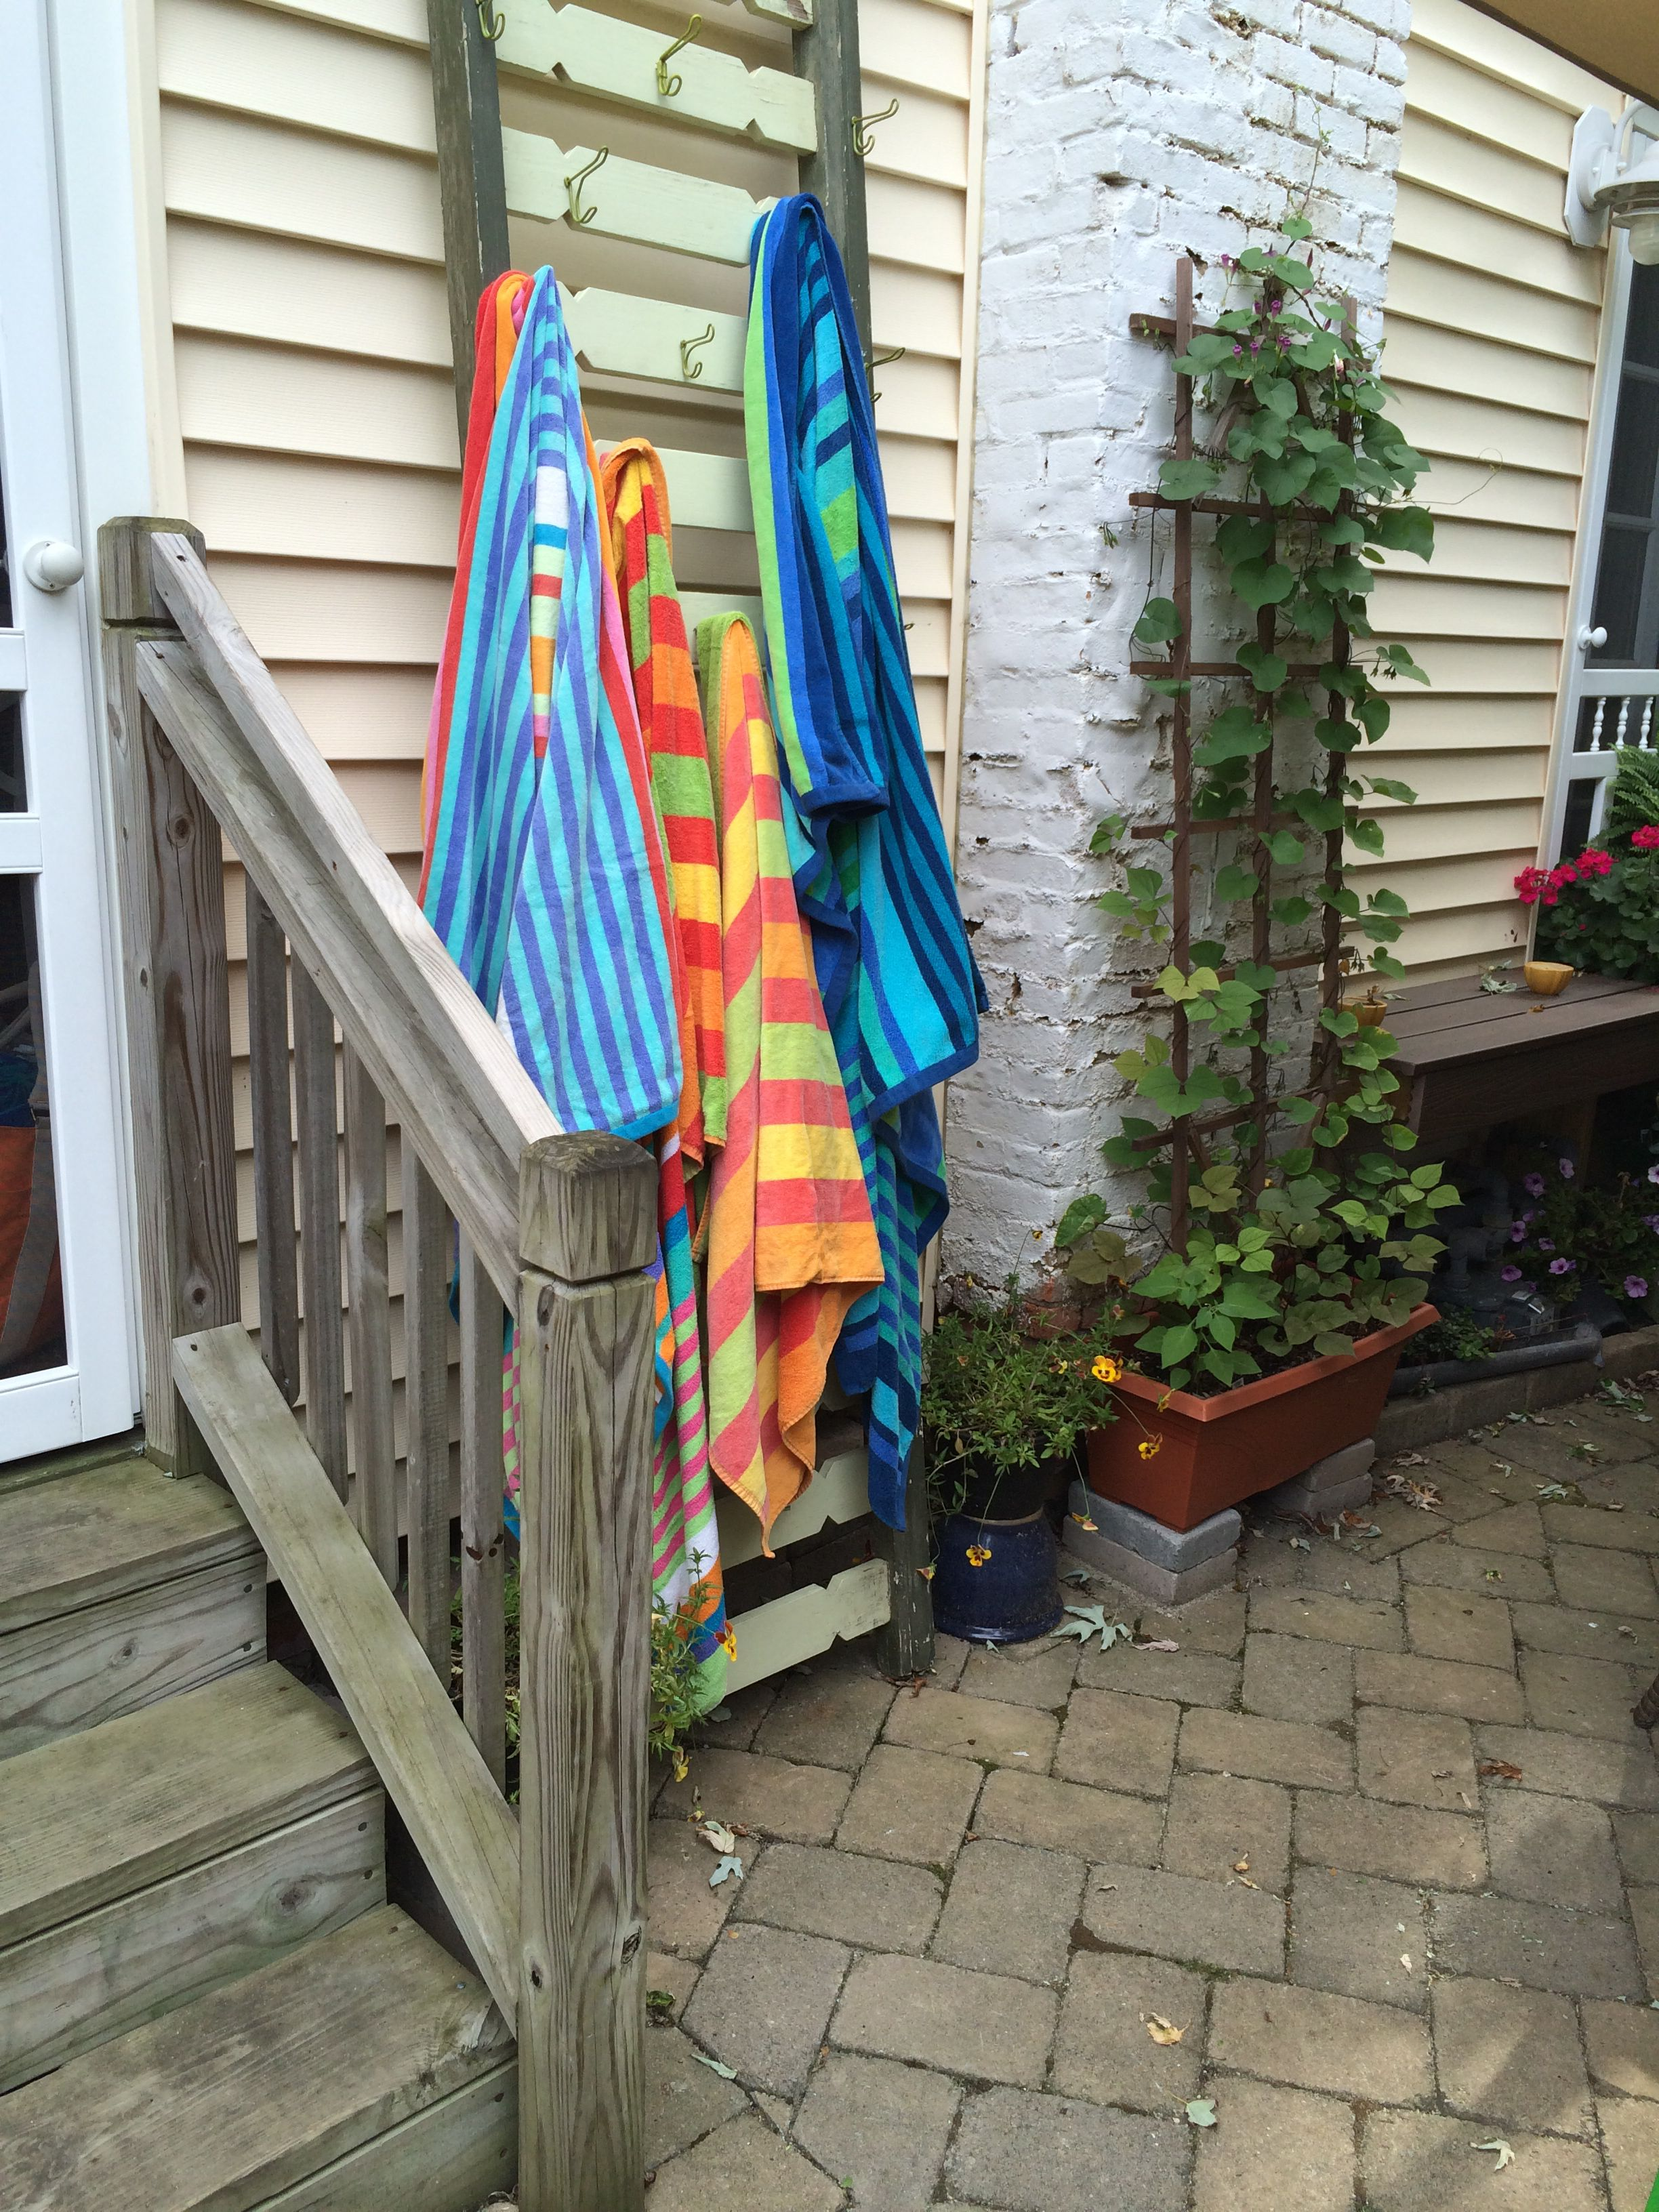 Outdoor Towel Drying Rack My Stepmom Refashioned This Old Porch